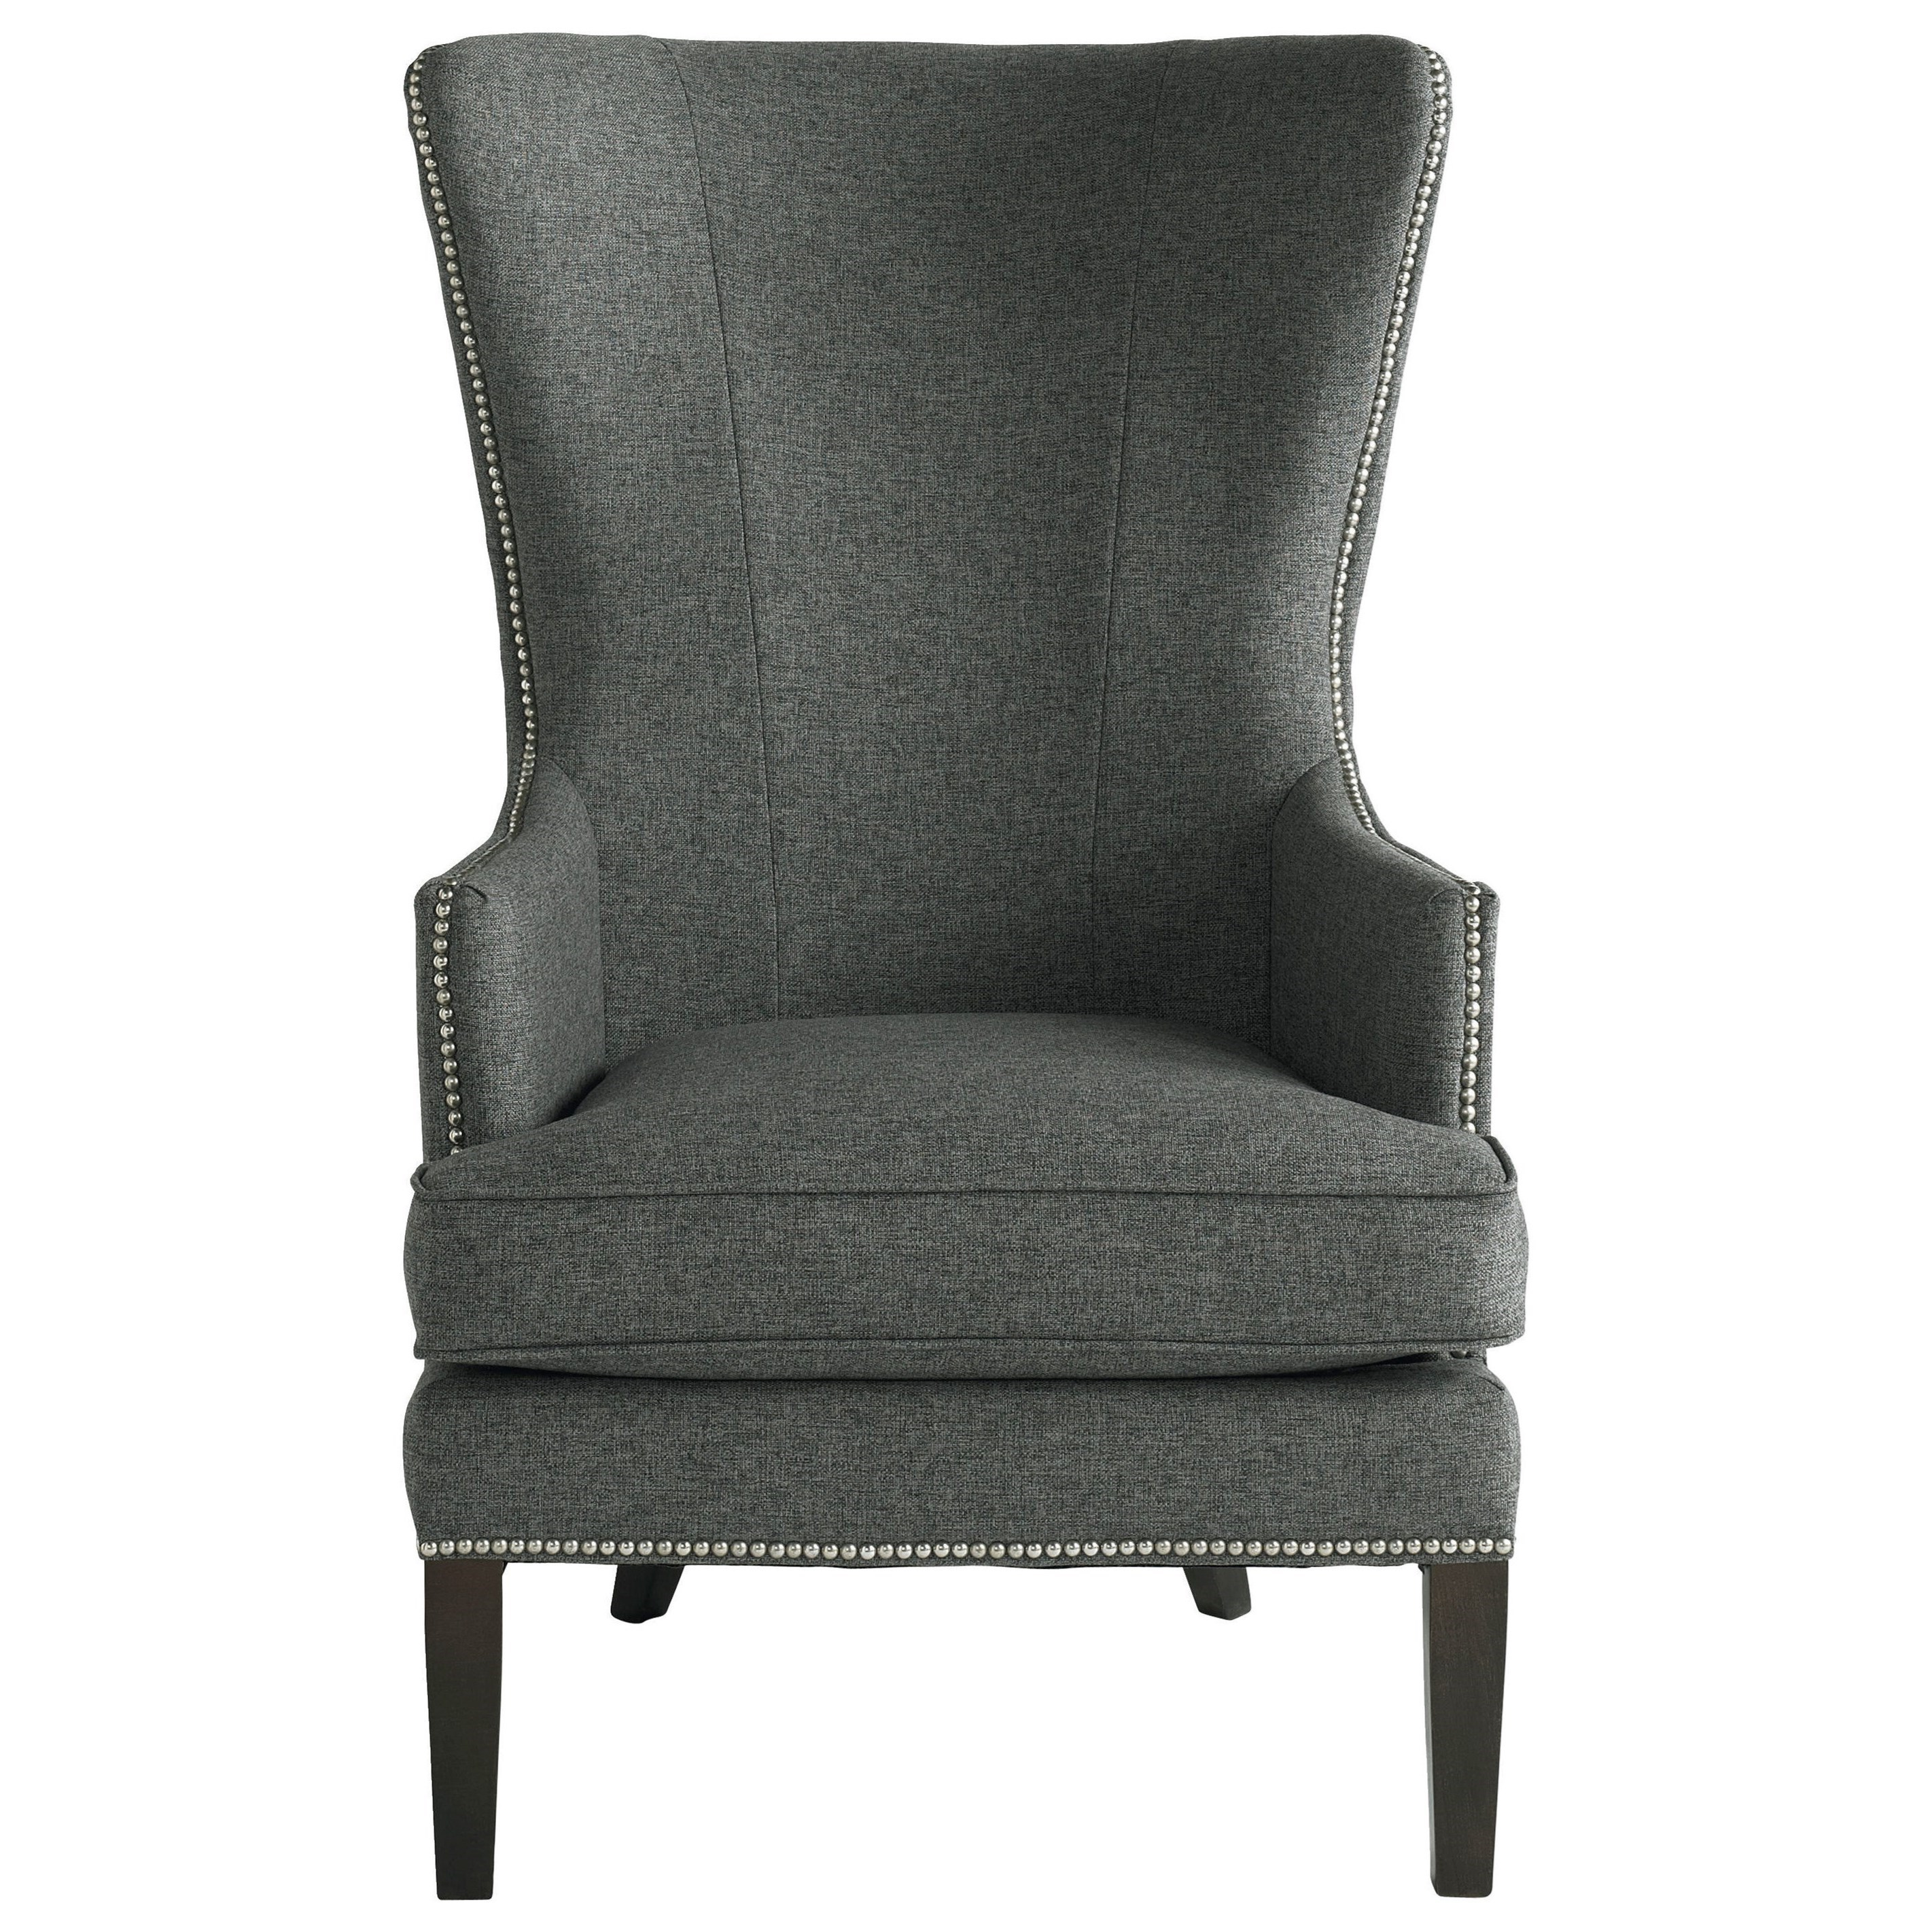 Whitney Accent Chair by Bassett at Bassett of Cool Springs